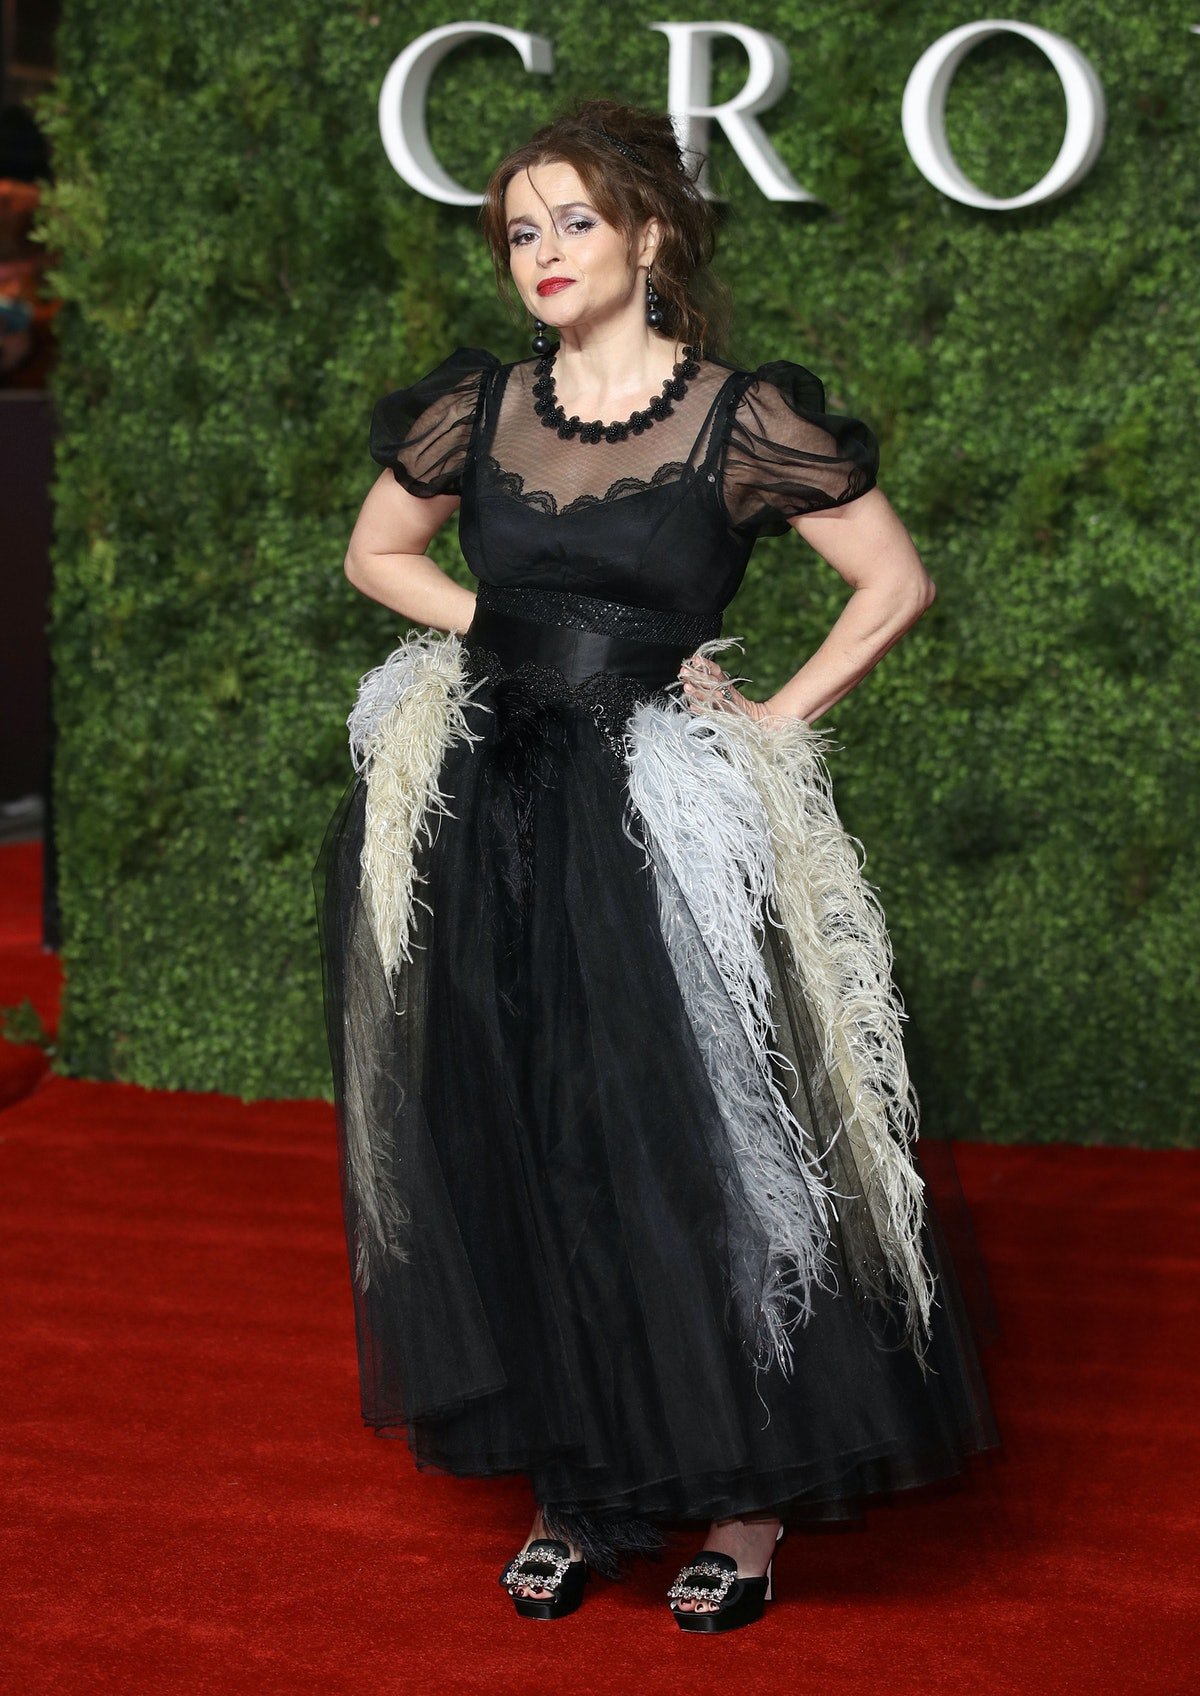 Helena on a red carpet The Crown in feathered gown